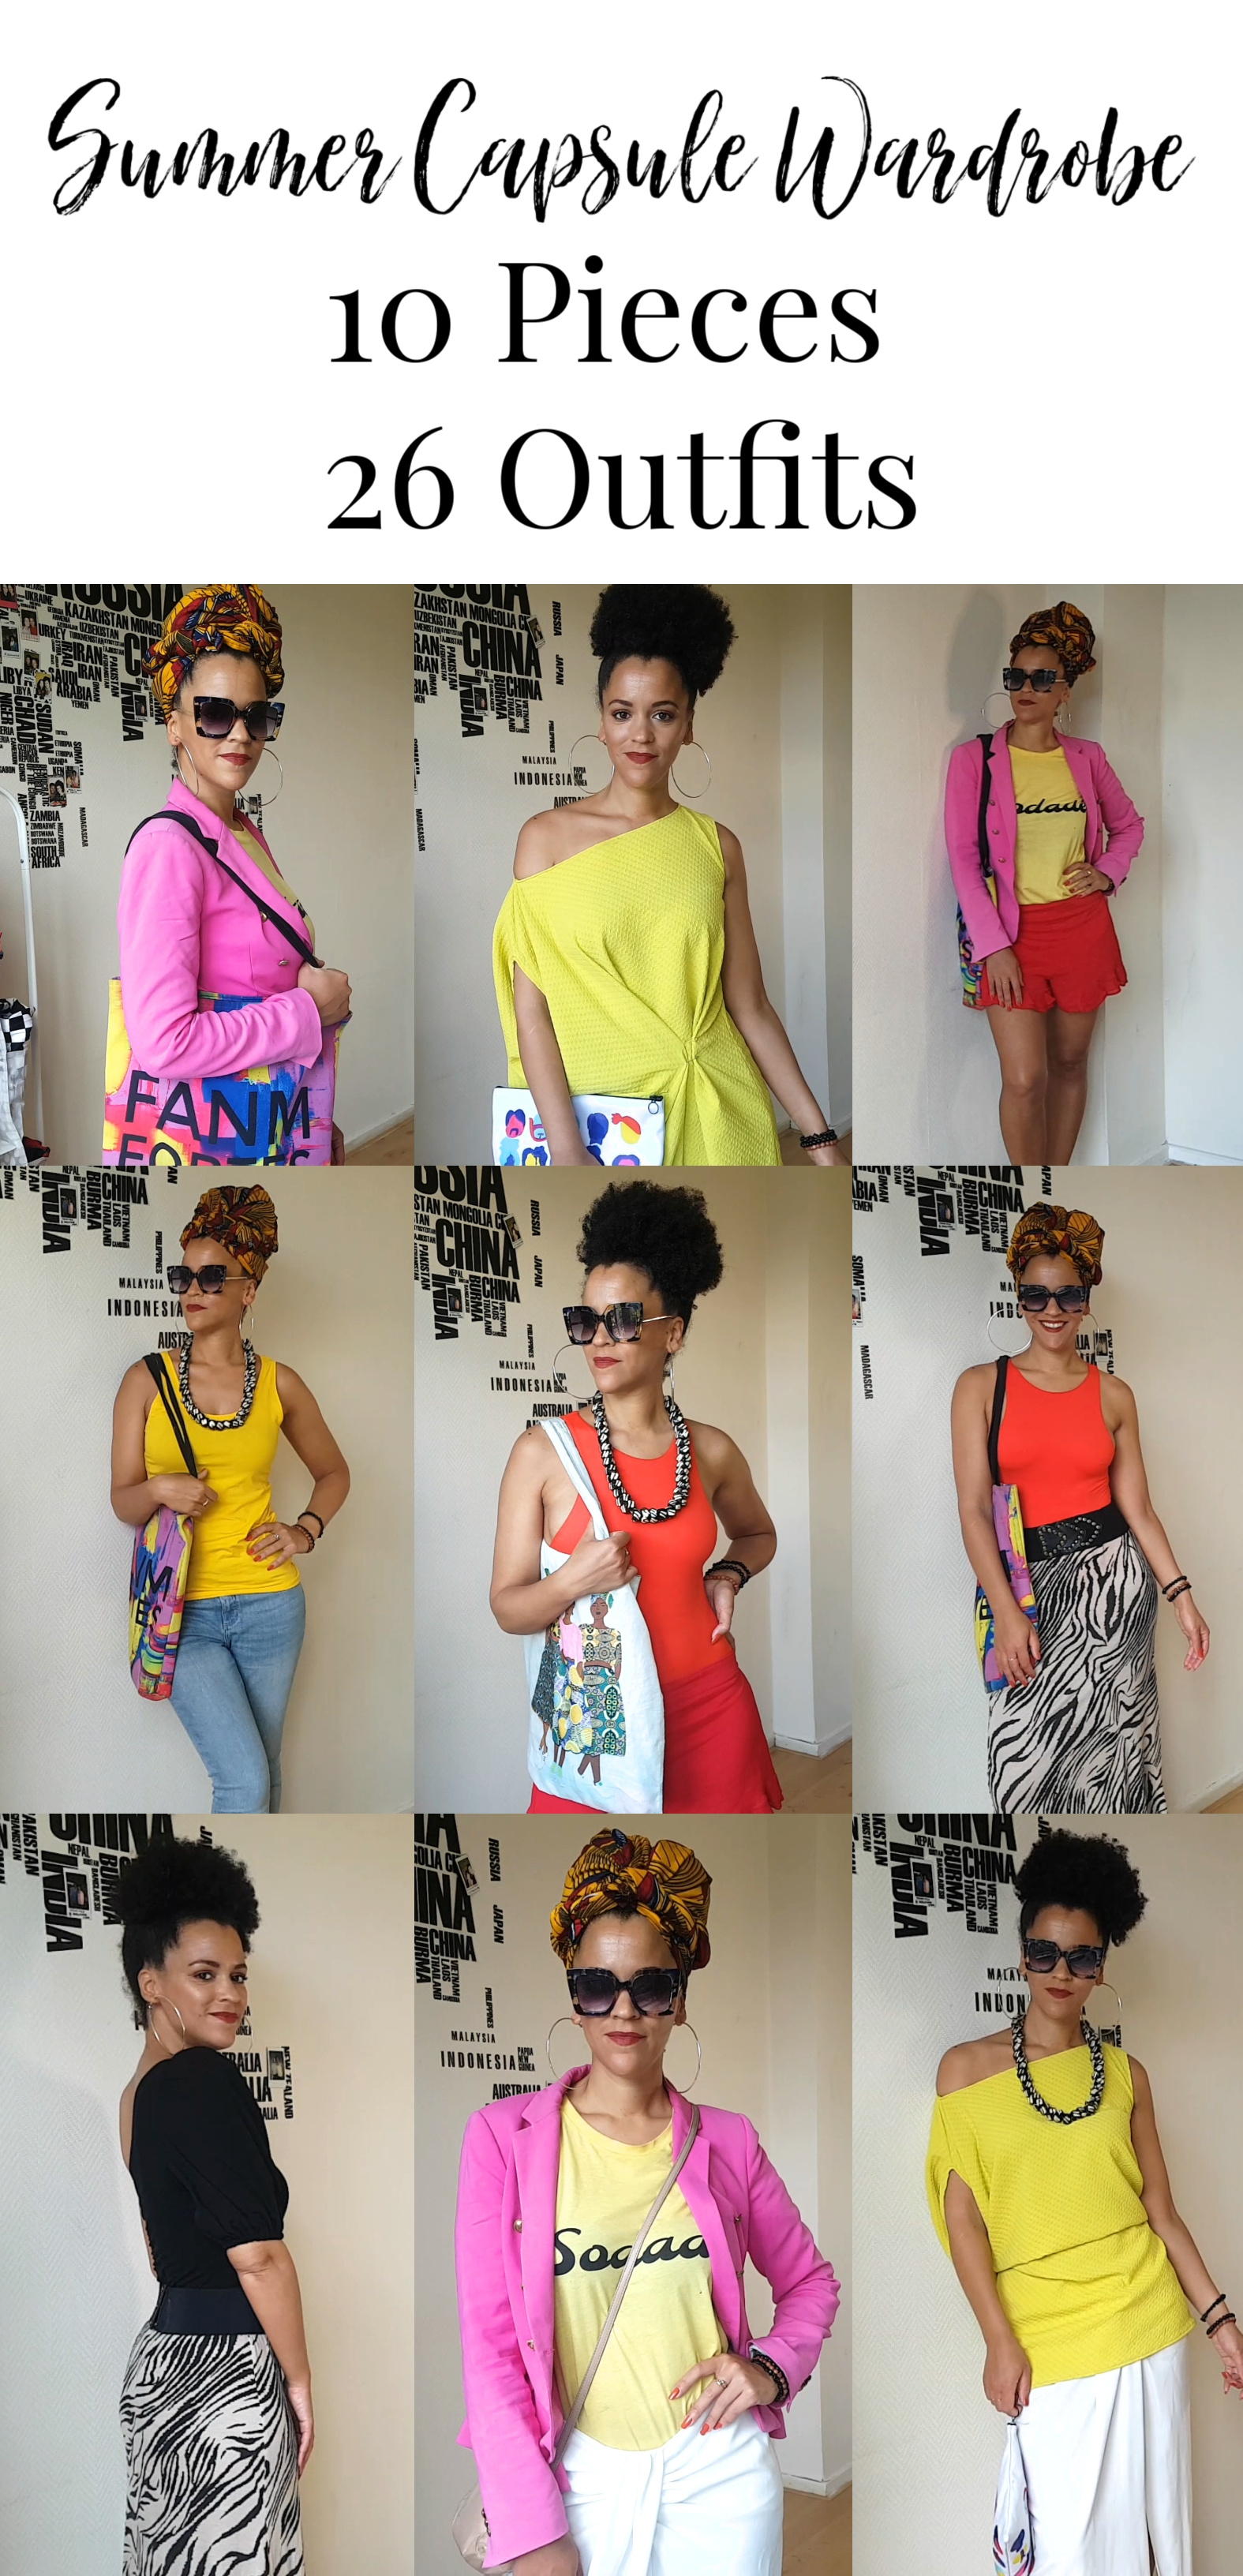 10 Pieces, 26 Colorful Summer Capsule Wardrobe | Summer Outfit Ideas Lookbook